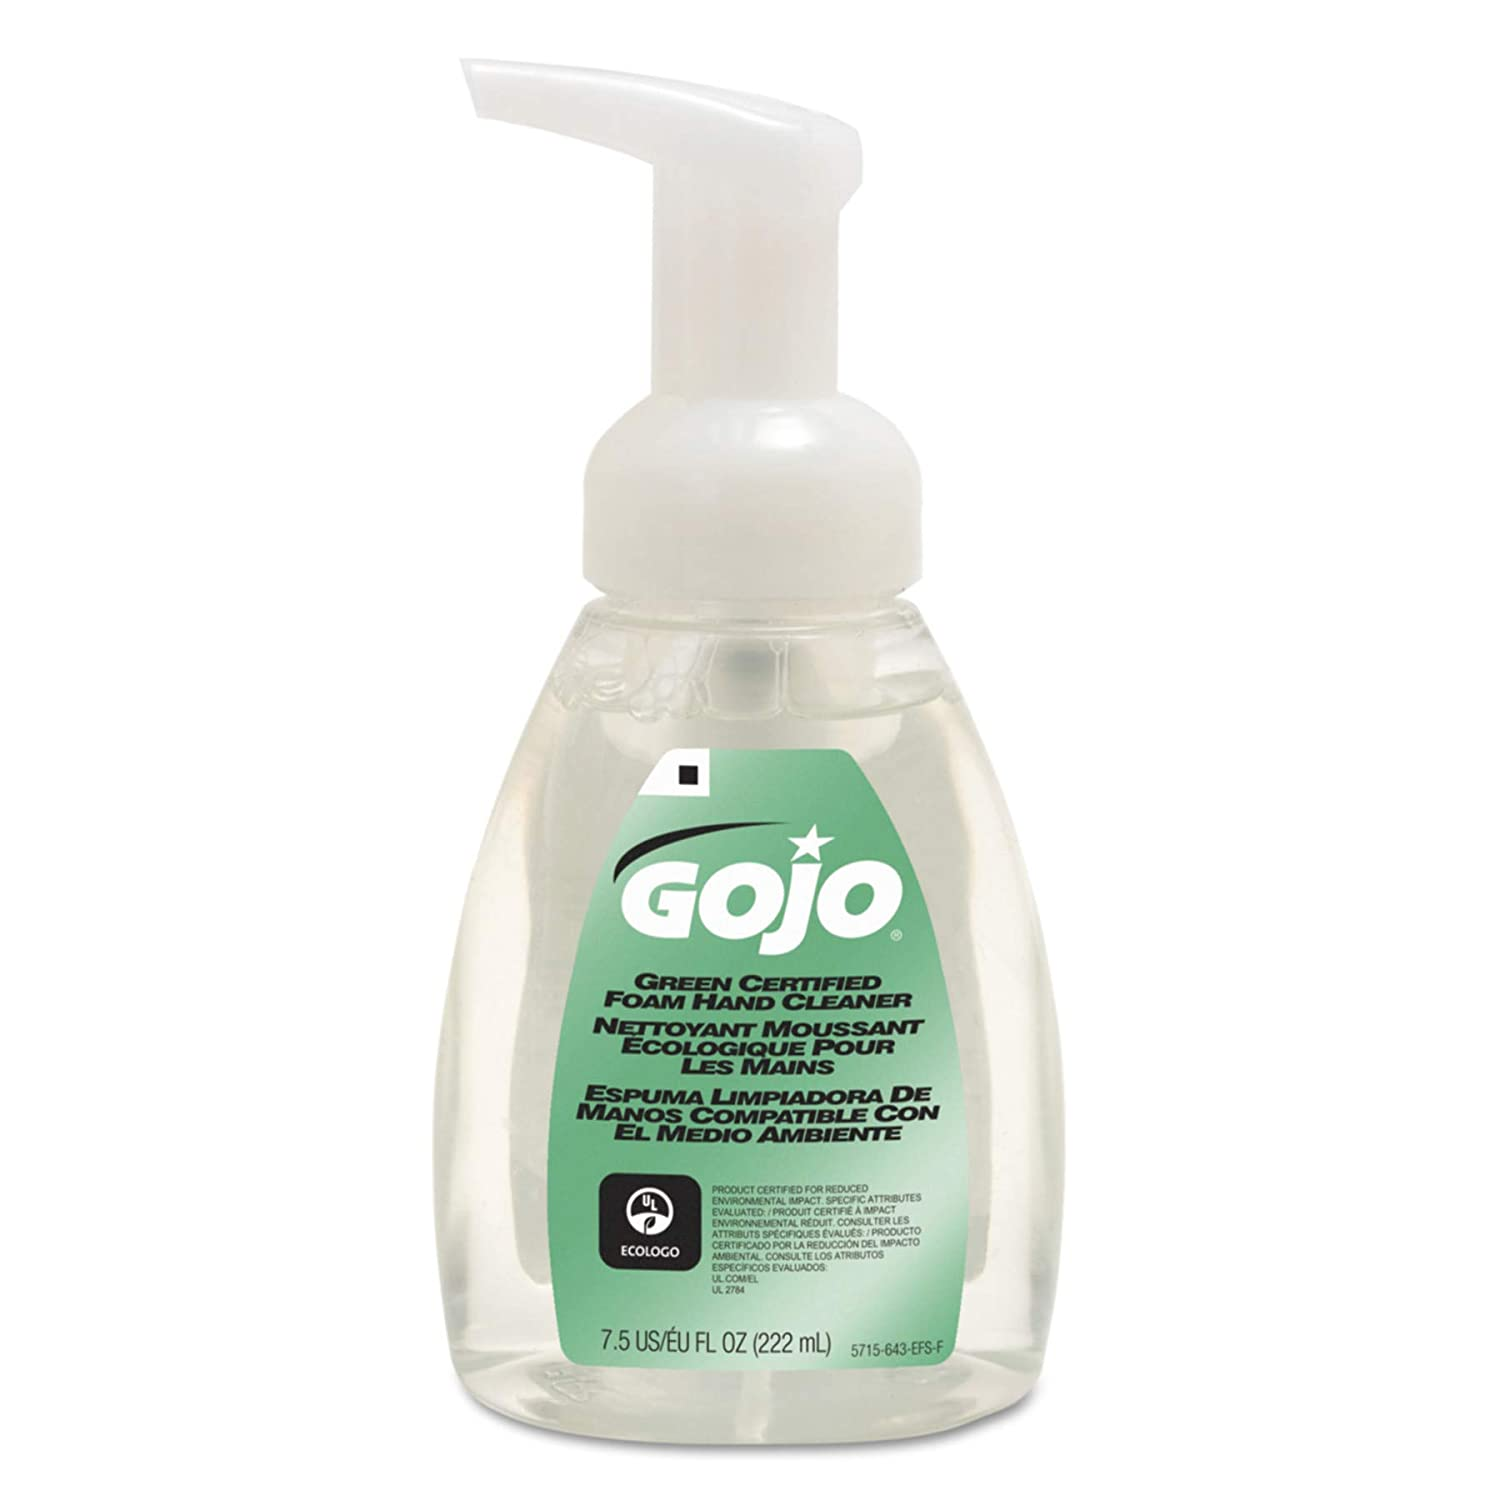 GOJO 5715-06 Green Certified Foam Hand Cleaner, 7.5 Fl Oz Pump Bottle, 6-Pack GOJO / Purell CA